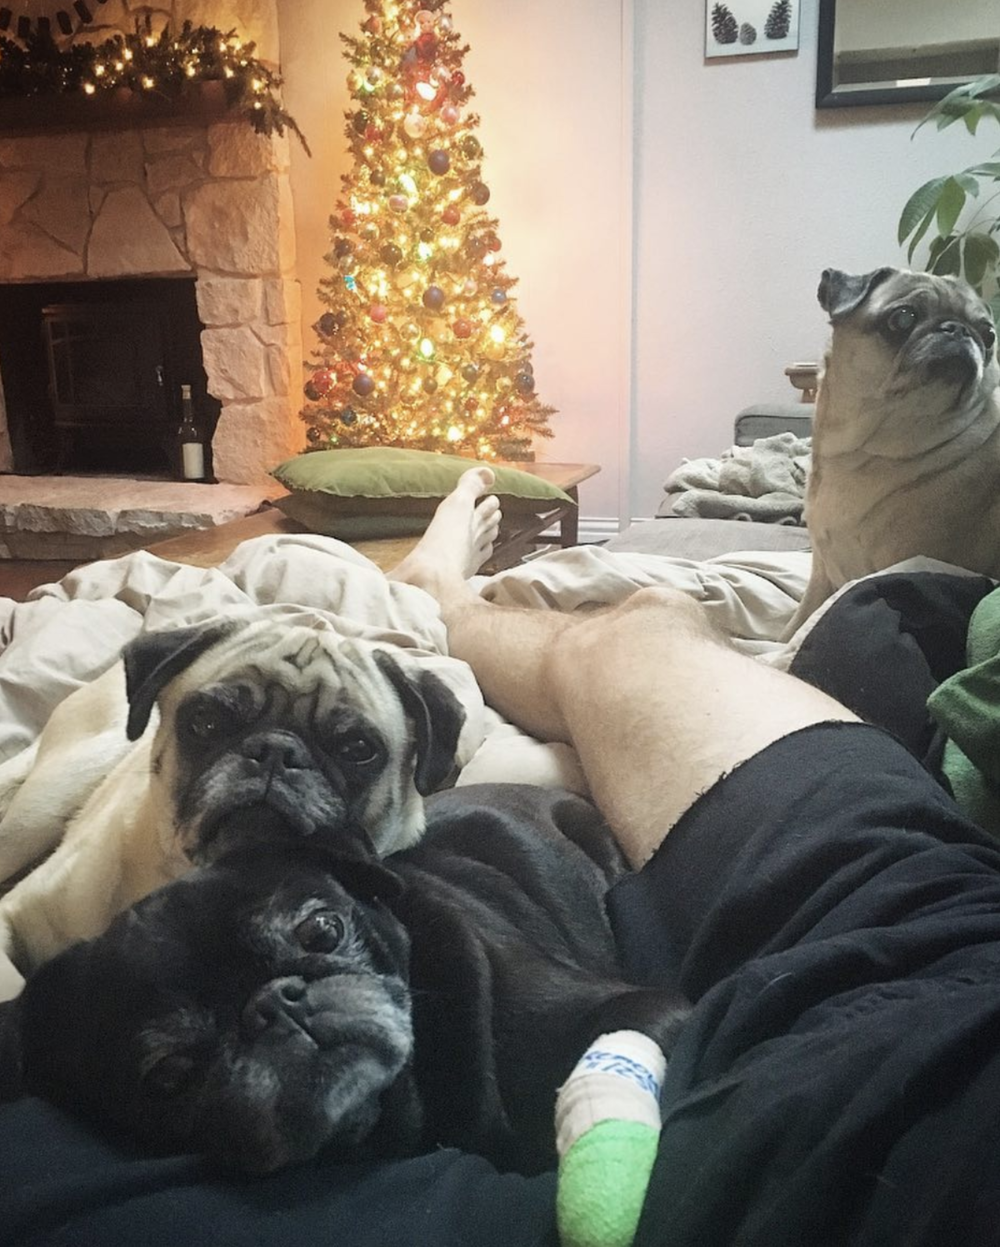 @texaspuglife with a crowd on a couch.